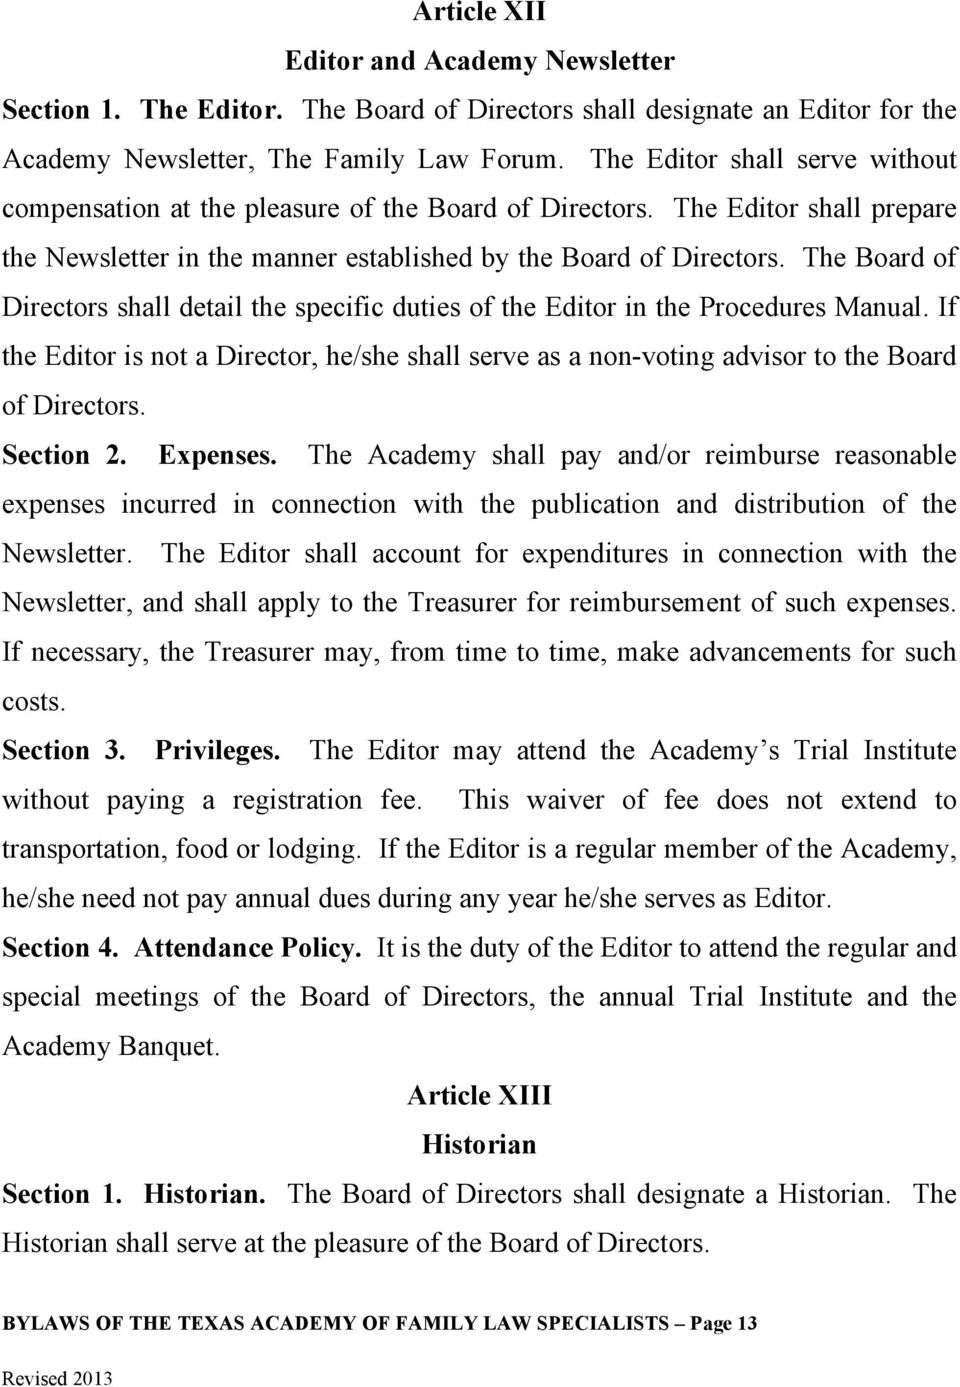 The Board of Directors shall detail the specific duties of the Editor in the Procedures Manual. If the Editor is not a Director, he/she shall serve as a non-voting advisor to the Board of Directors.